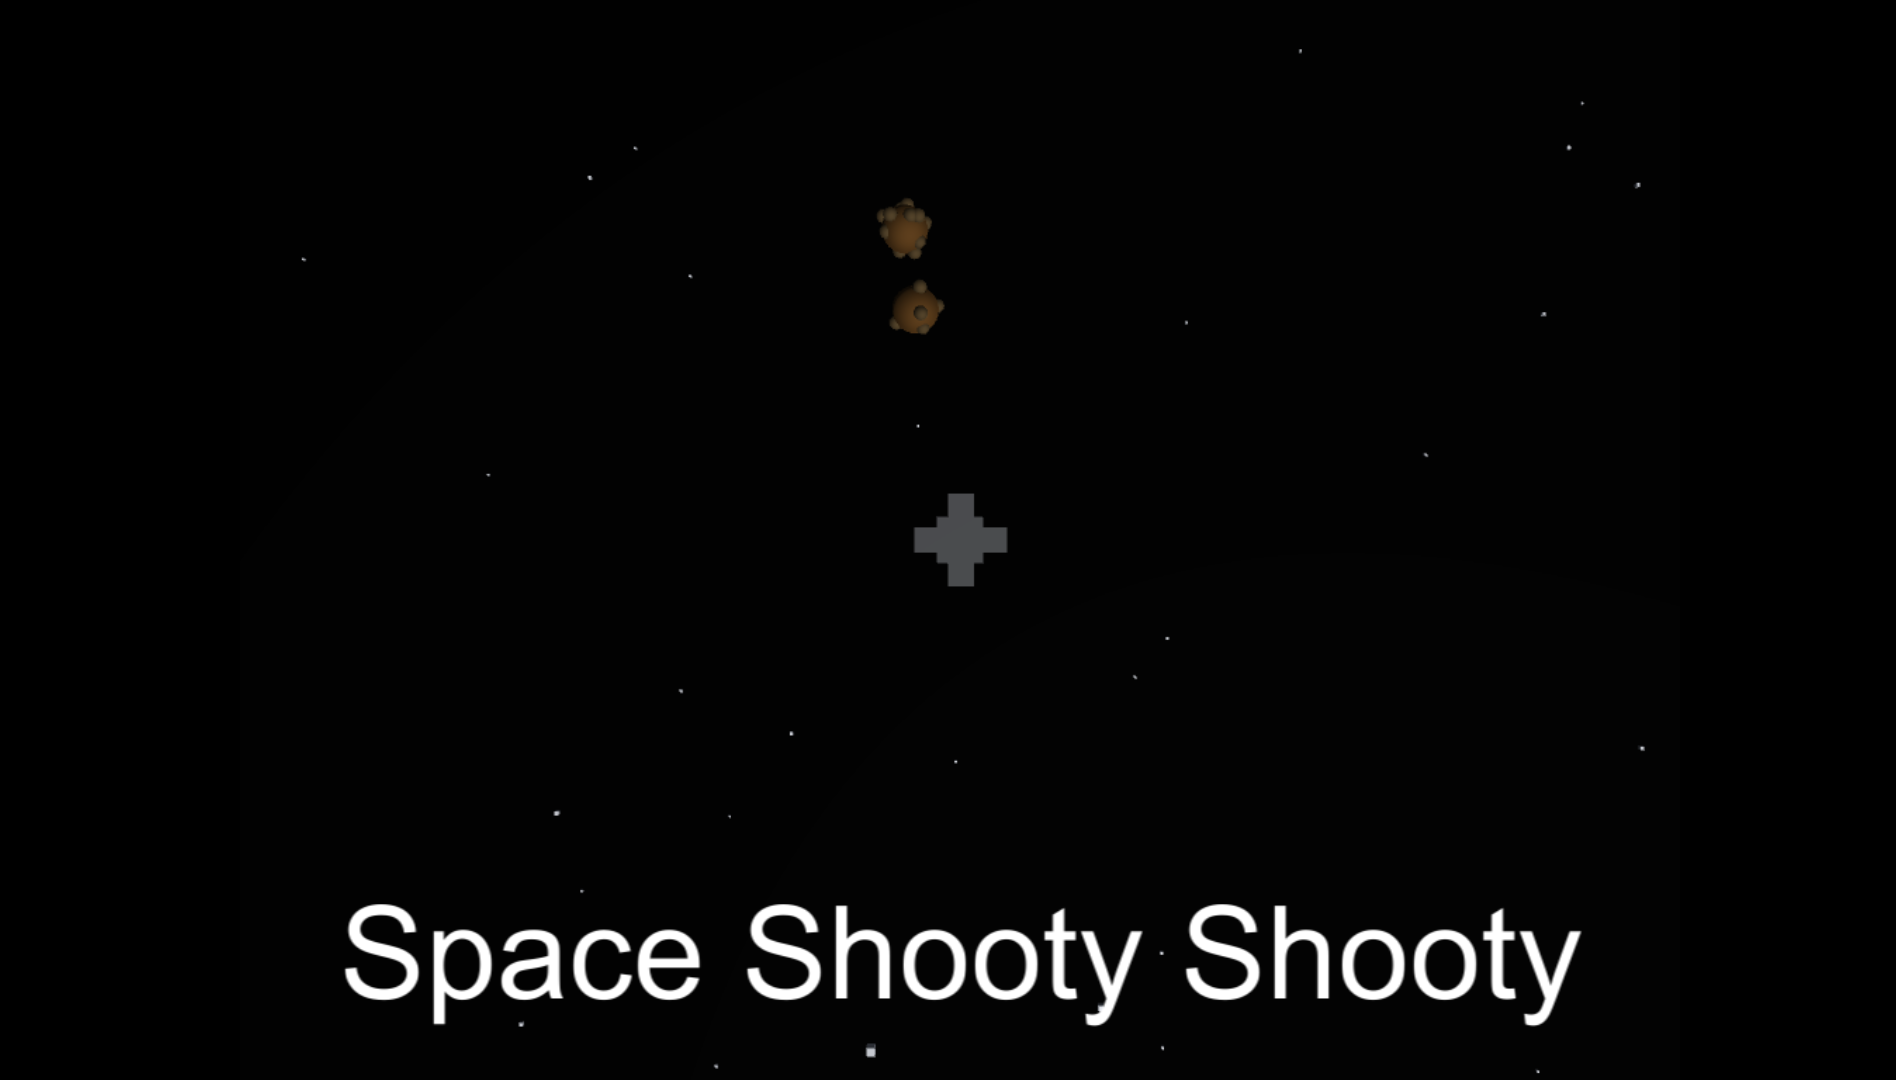 Space Shooty Shooty by brainybeard